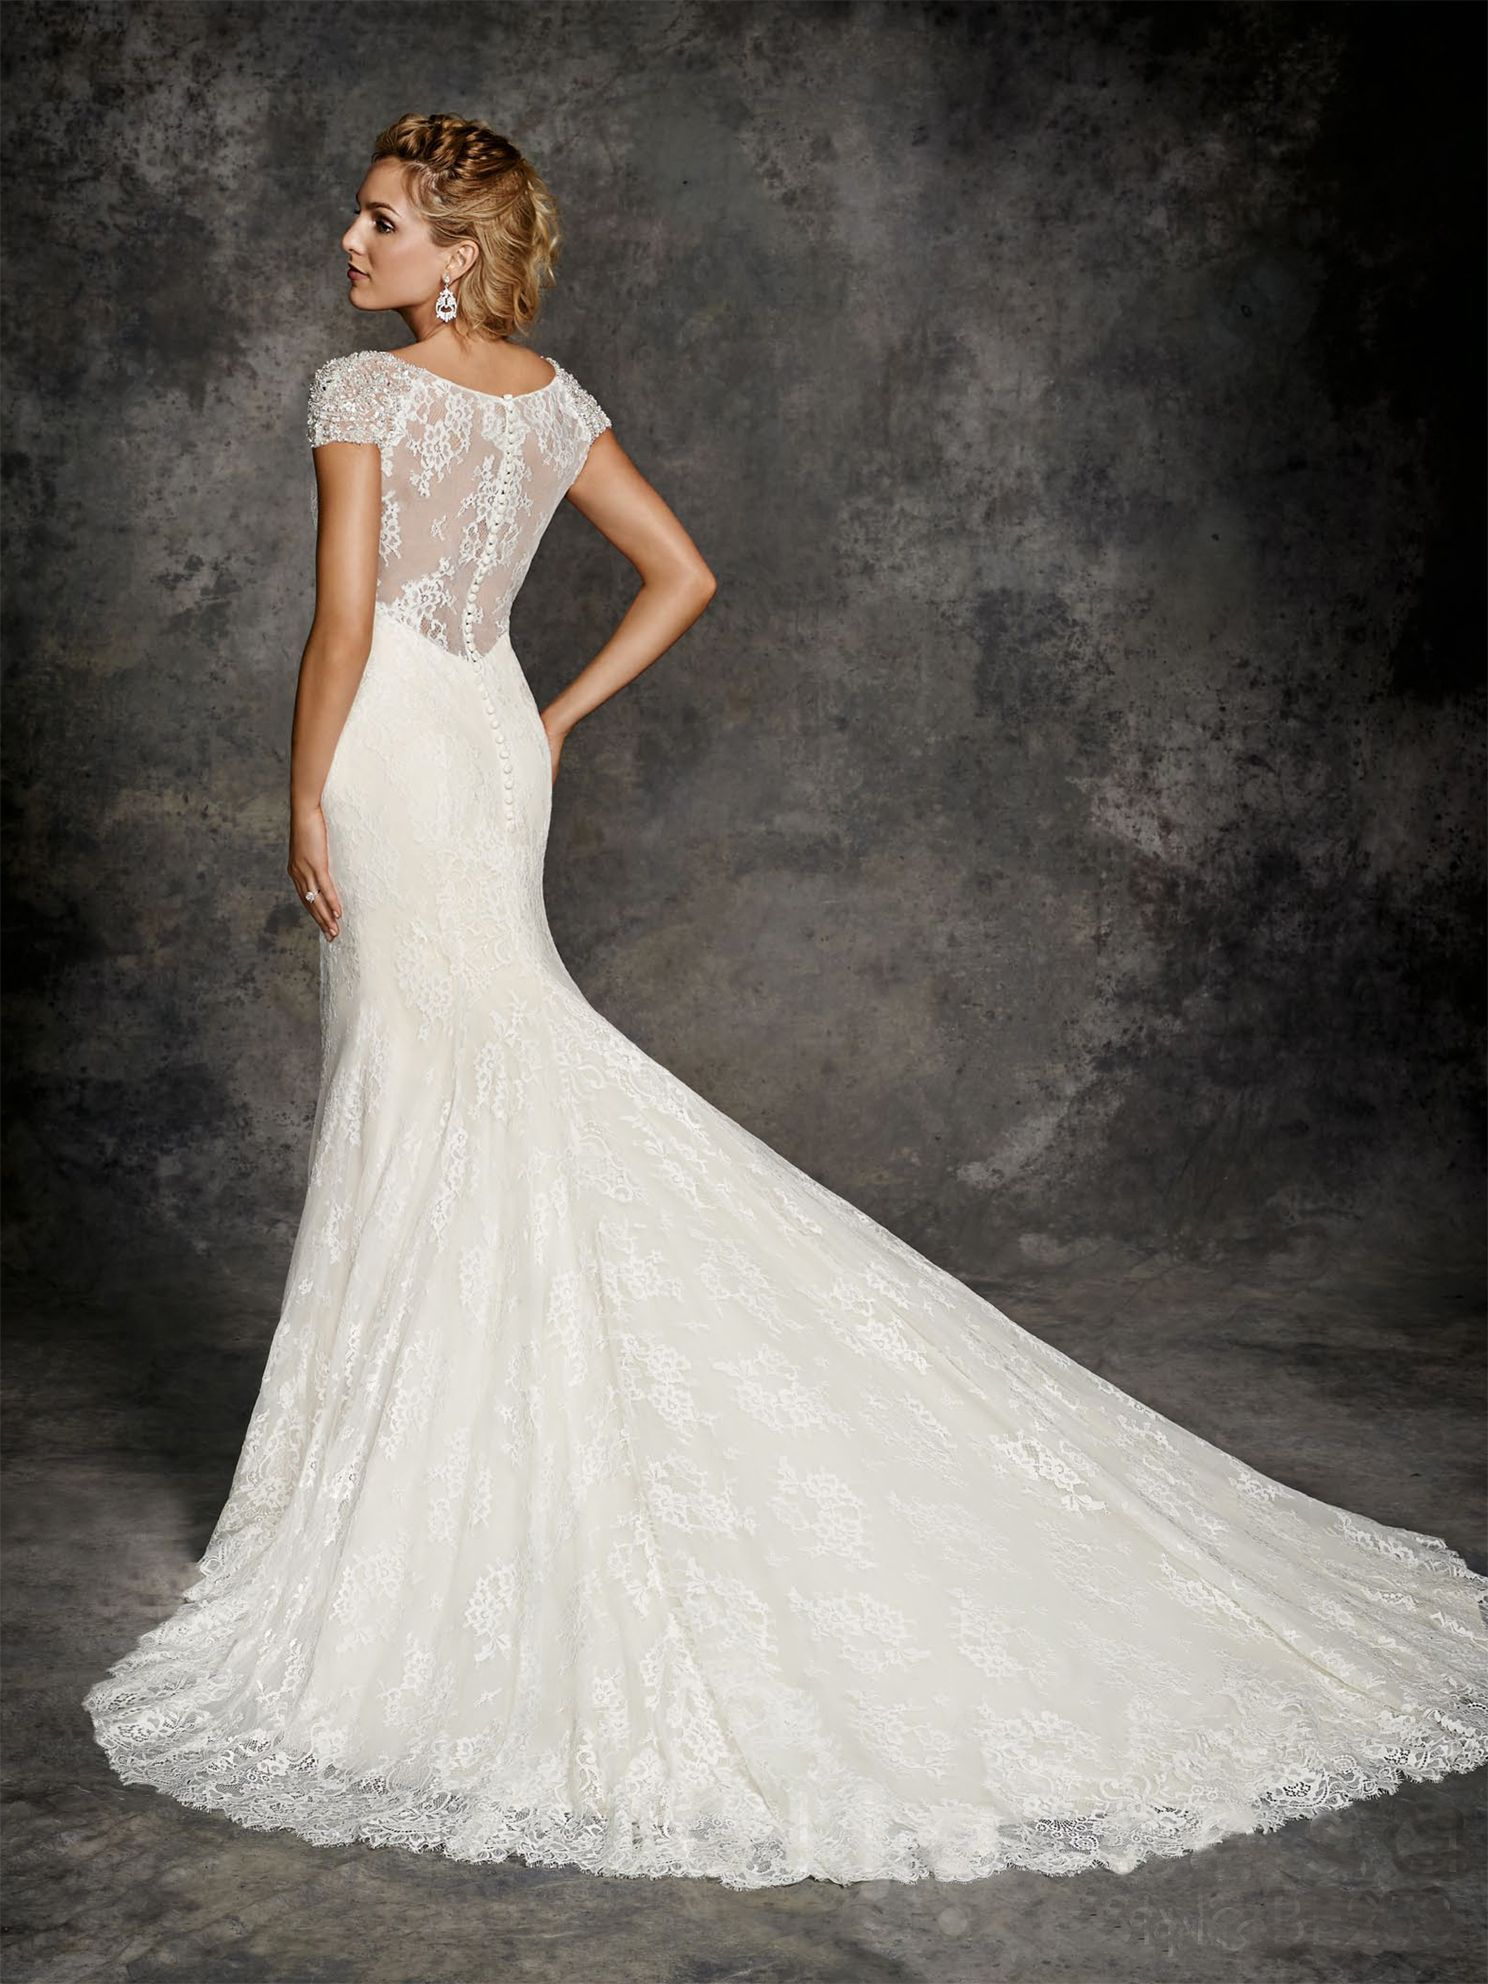 Delicate lace Slim line gown with illusion lace detail back.